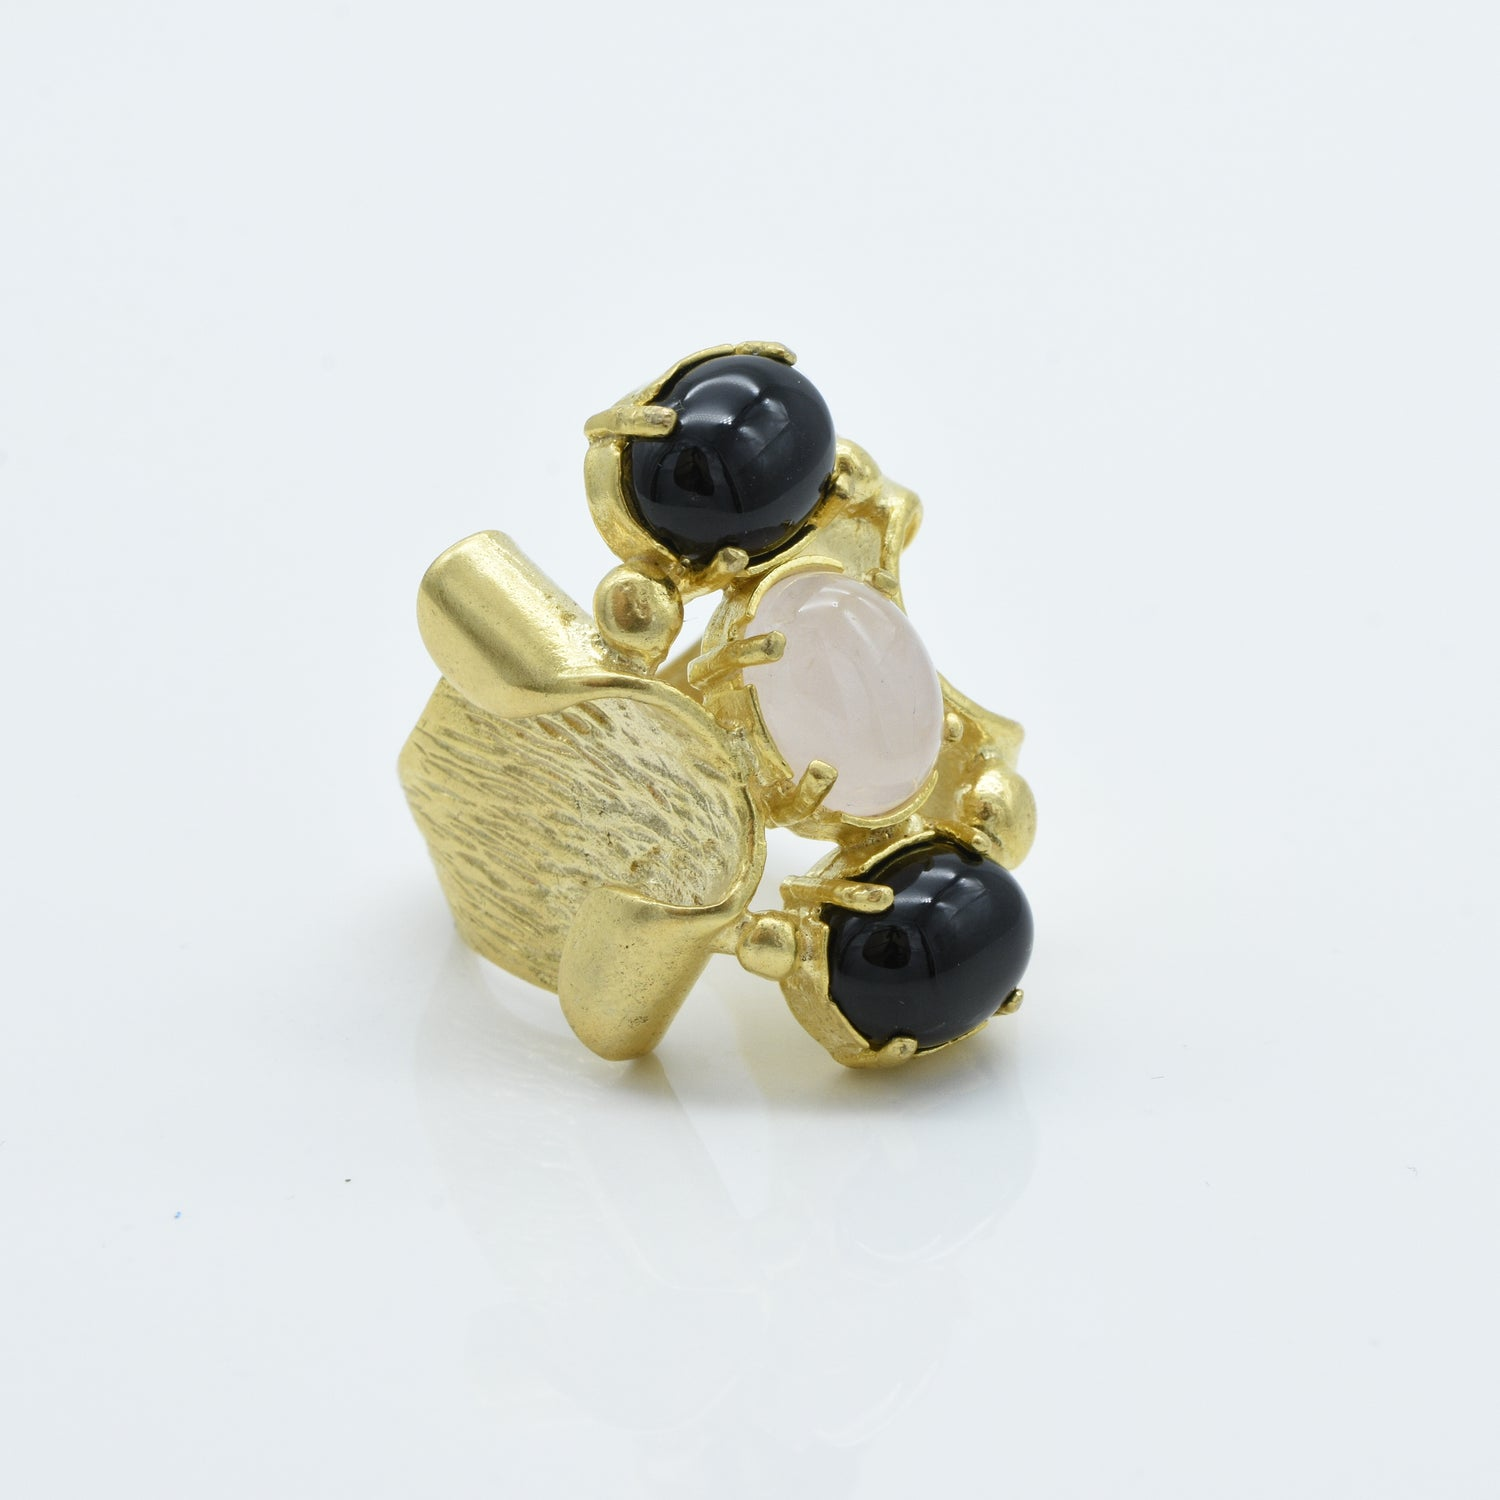 Aylas Rose Quartz and Onyx ring - 21ct Gold plated brass - Handmade in Ottoman Style by Artisan